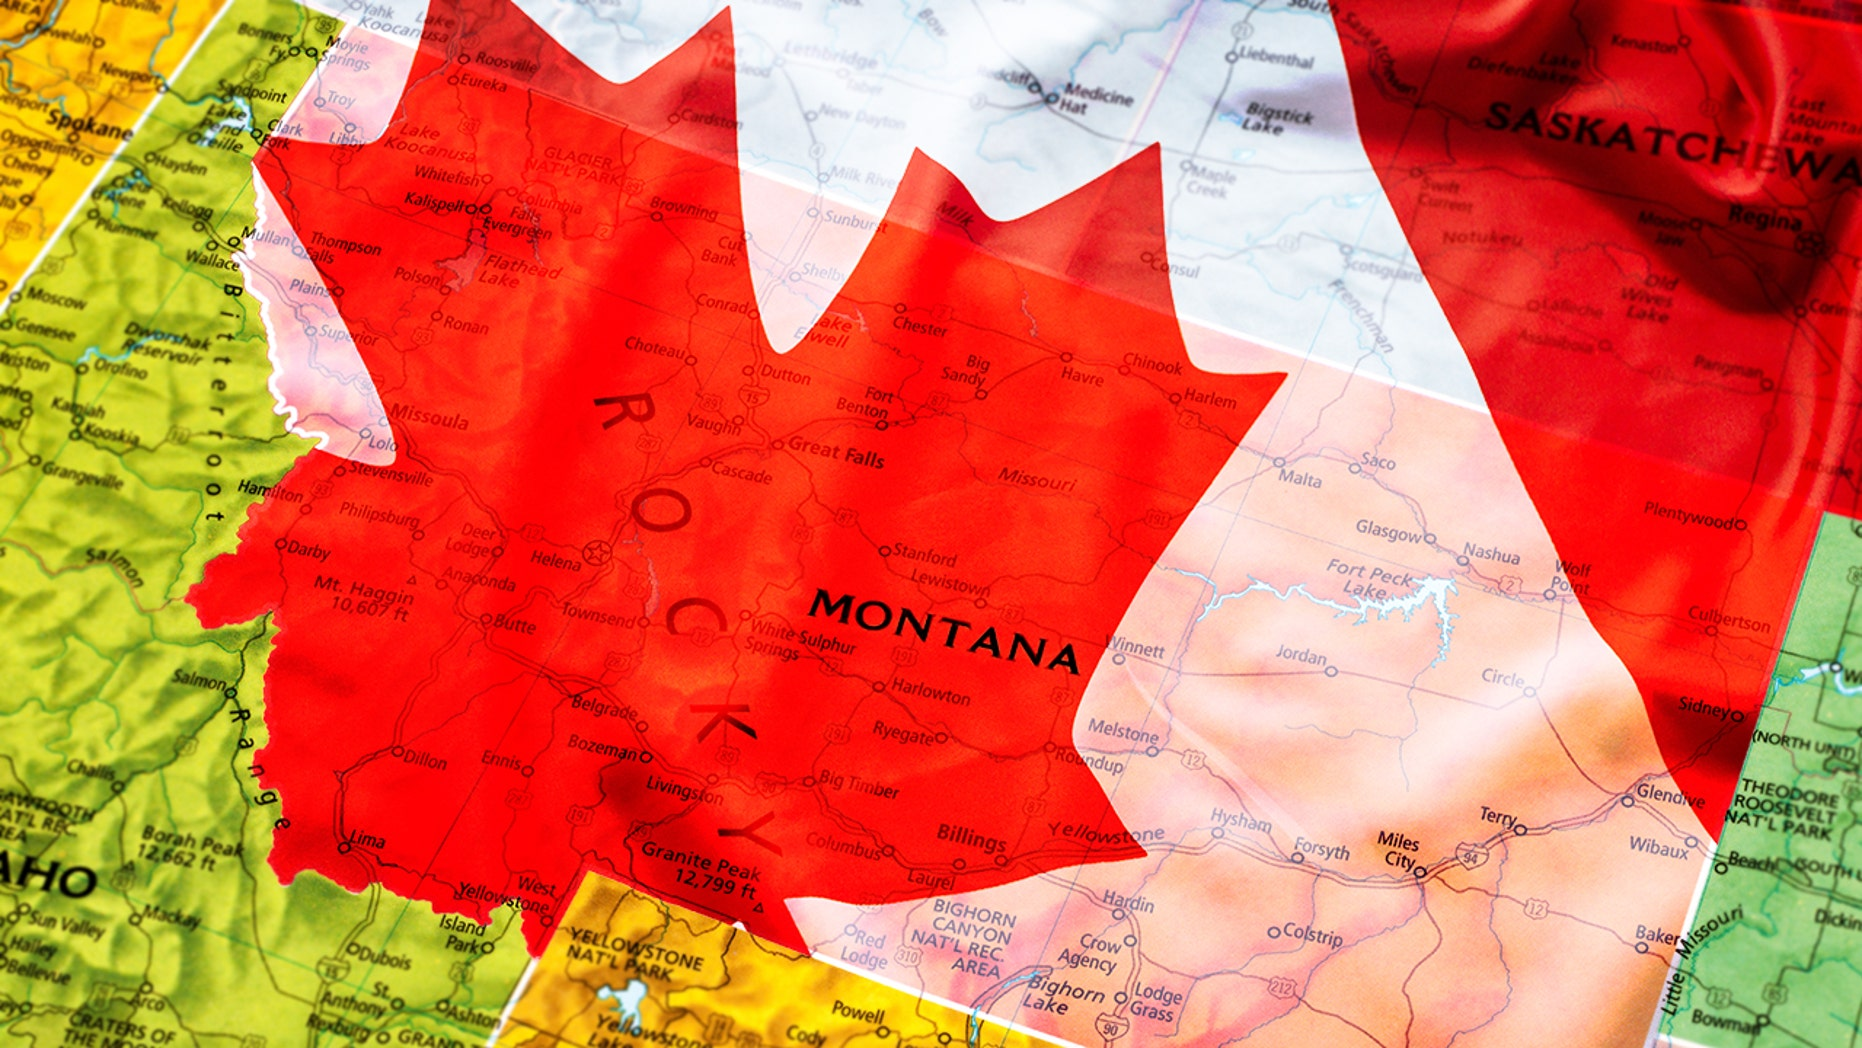 Petition floats idea of selling Montana to Canada for $1 trillion